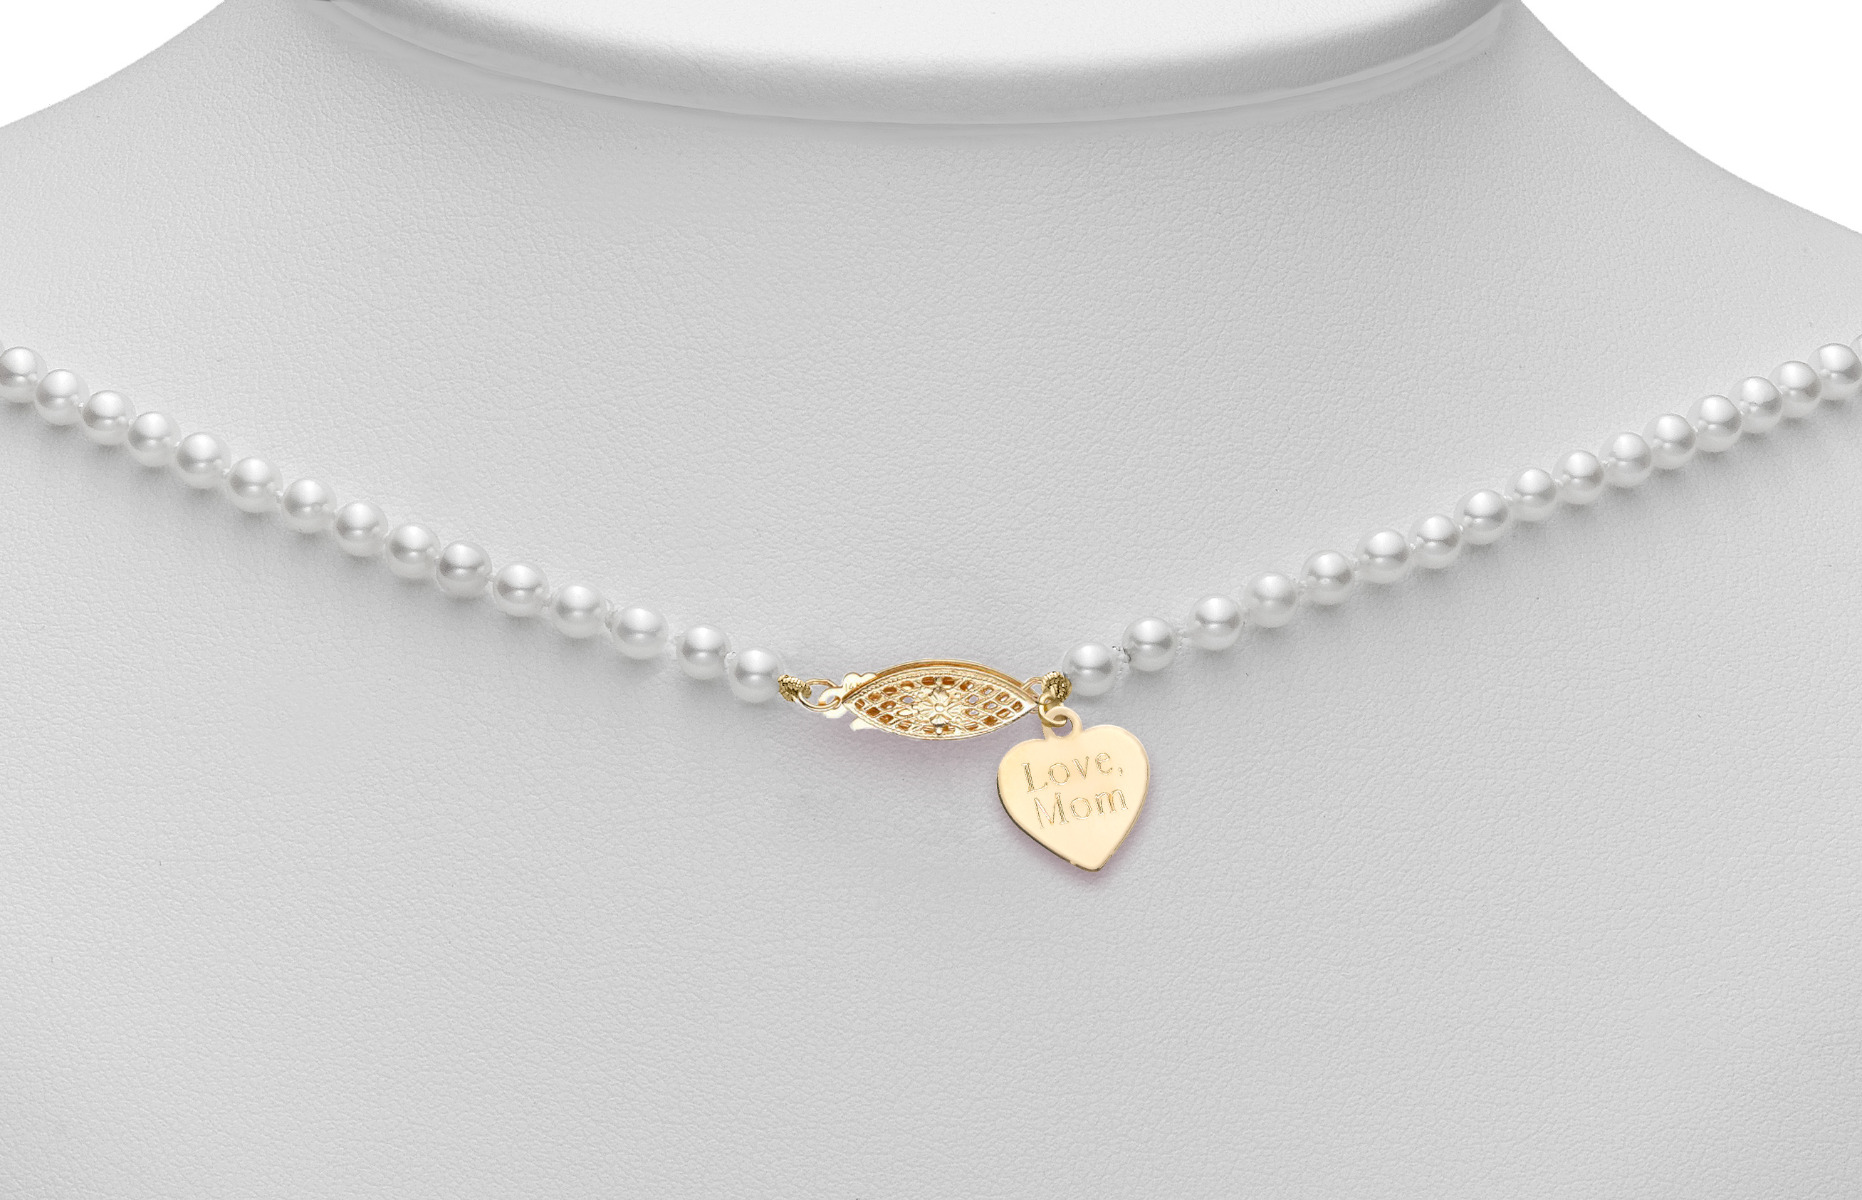 starter necklace with engraved heart charm and filigree clasp